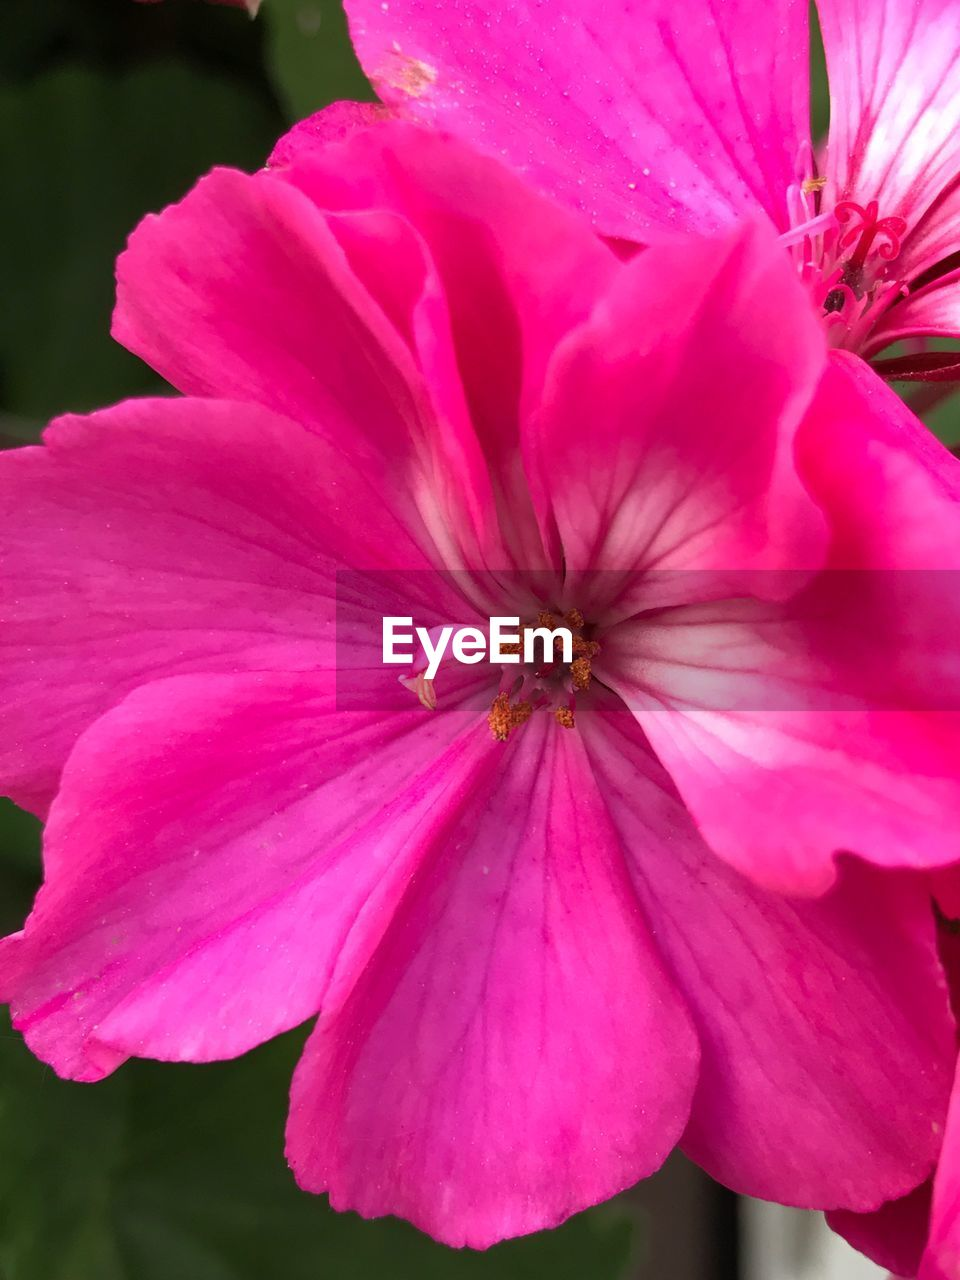 flower, petal, pink color, flower head, fragility, beauty in nature, nature, pollen, freshness, no people, growth, close-up, day, blooming, plant, stamen, outdoors, hibiscus